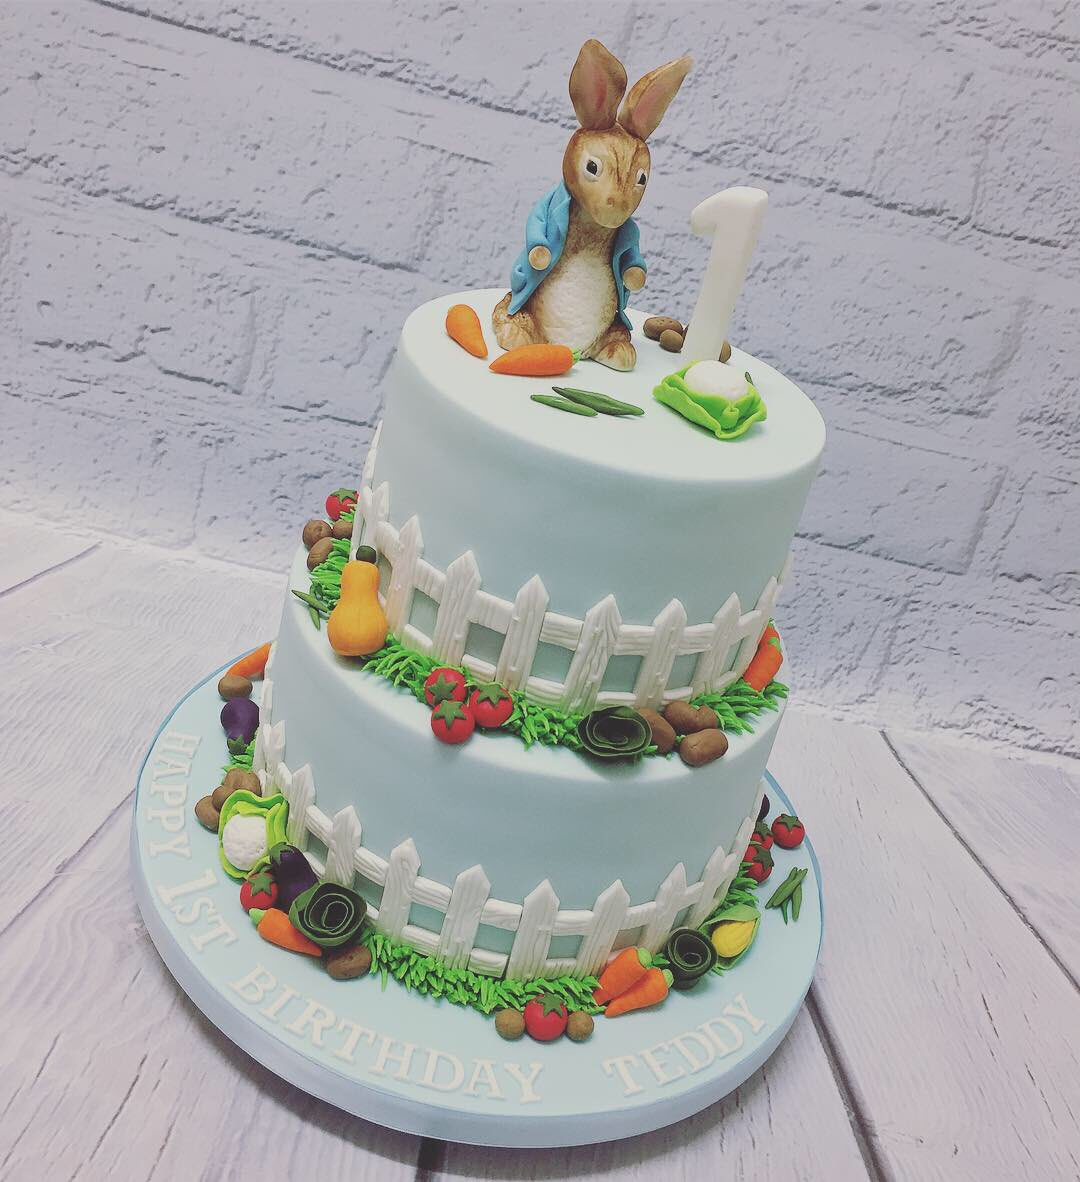 Astonishing O Xrhsths Marias Cake Boutique Sto Twitter Peter Rabbit 1St Personalised Birthday Cards Epsylily Jamesorg